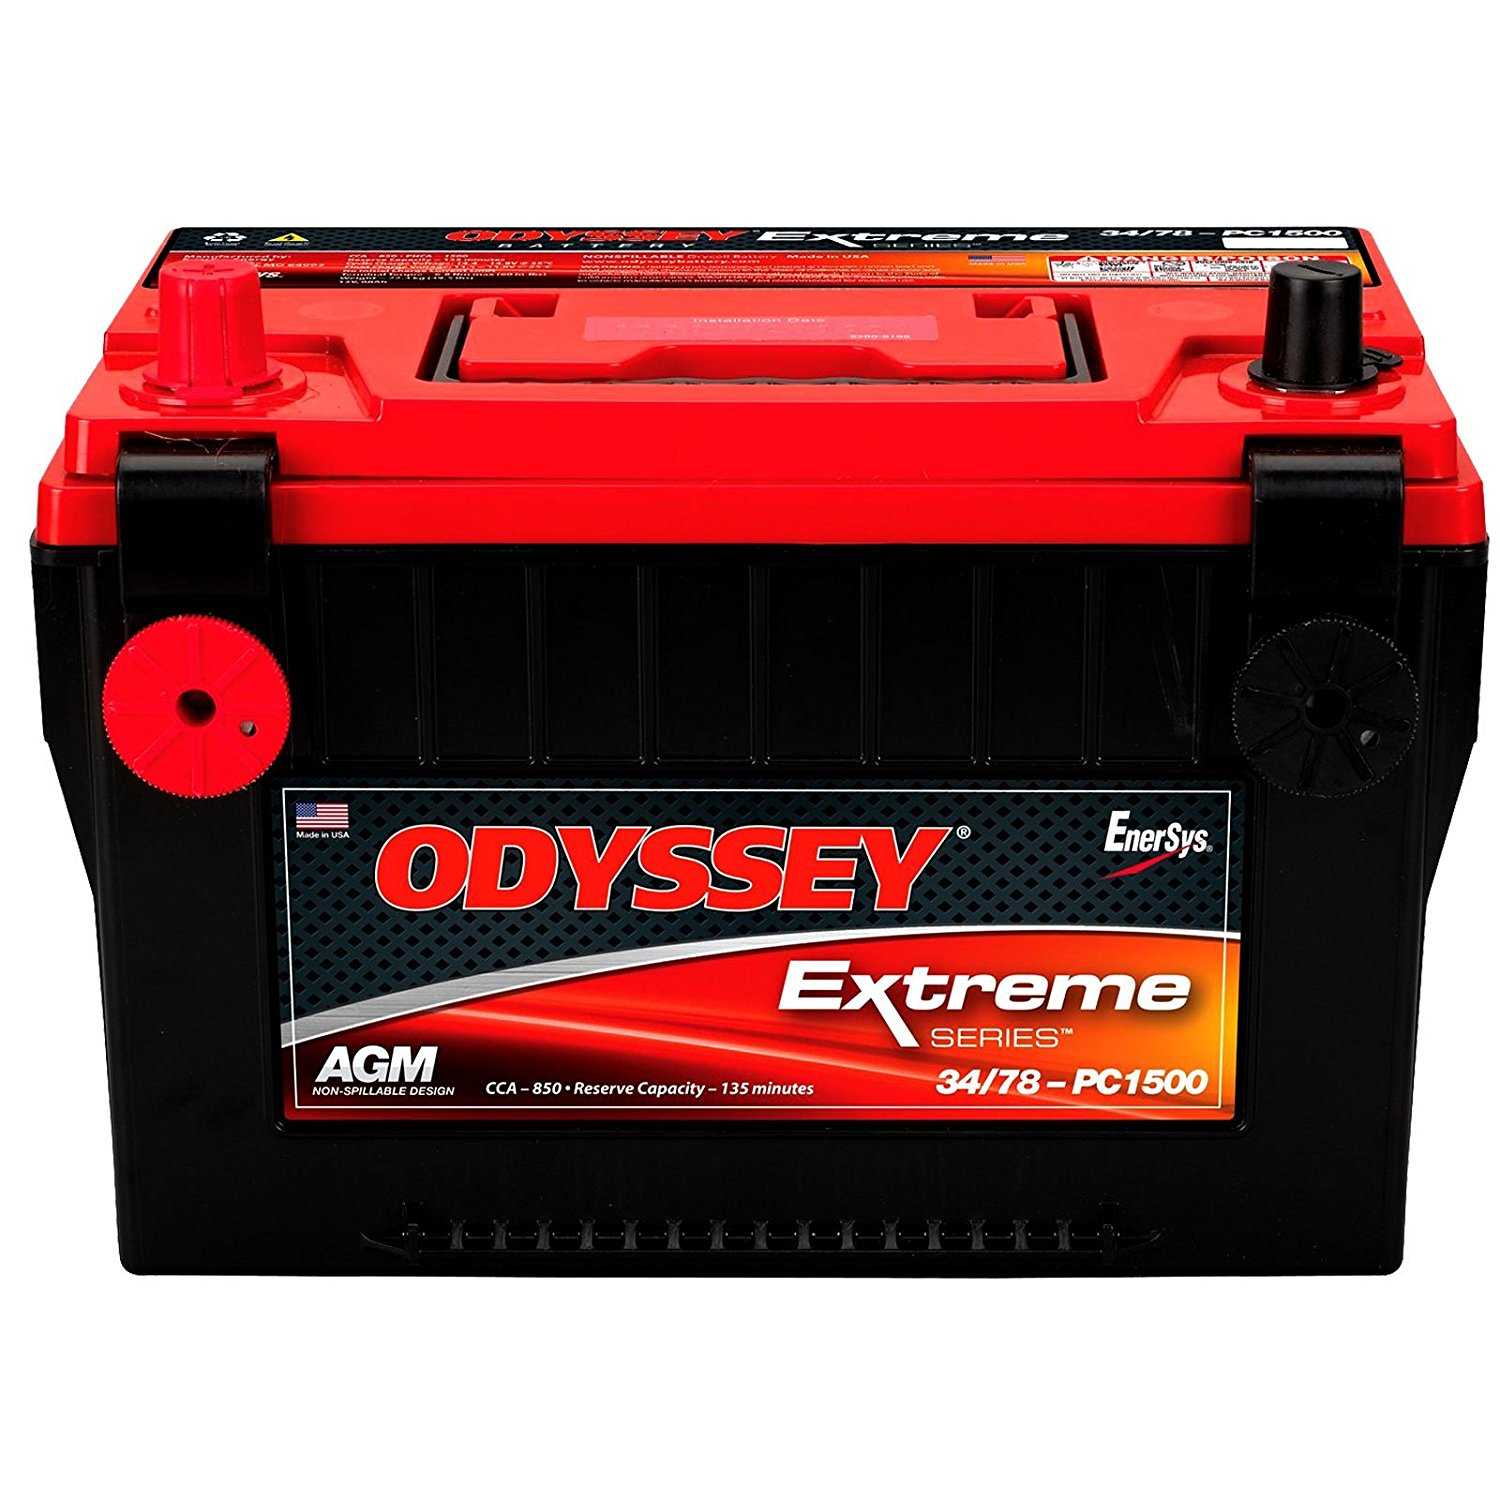 Odyssey Extreme PC1500/DT 850CCA Sealed AGM Automotive Start Battery for Emergency response: Police cruisers, fire trucks, ambulances. 4X4 Off-Road/Off-road vehicles - SUVS, Light trucks. Heavy Duty/Commercial Tractor trailers Earth-moving construction equipment, Farm, and Lawnmower Cars and